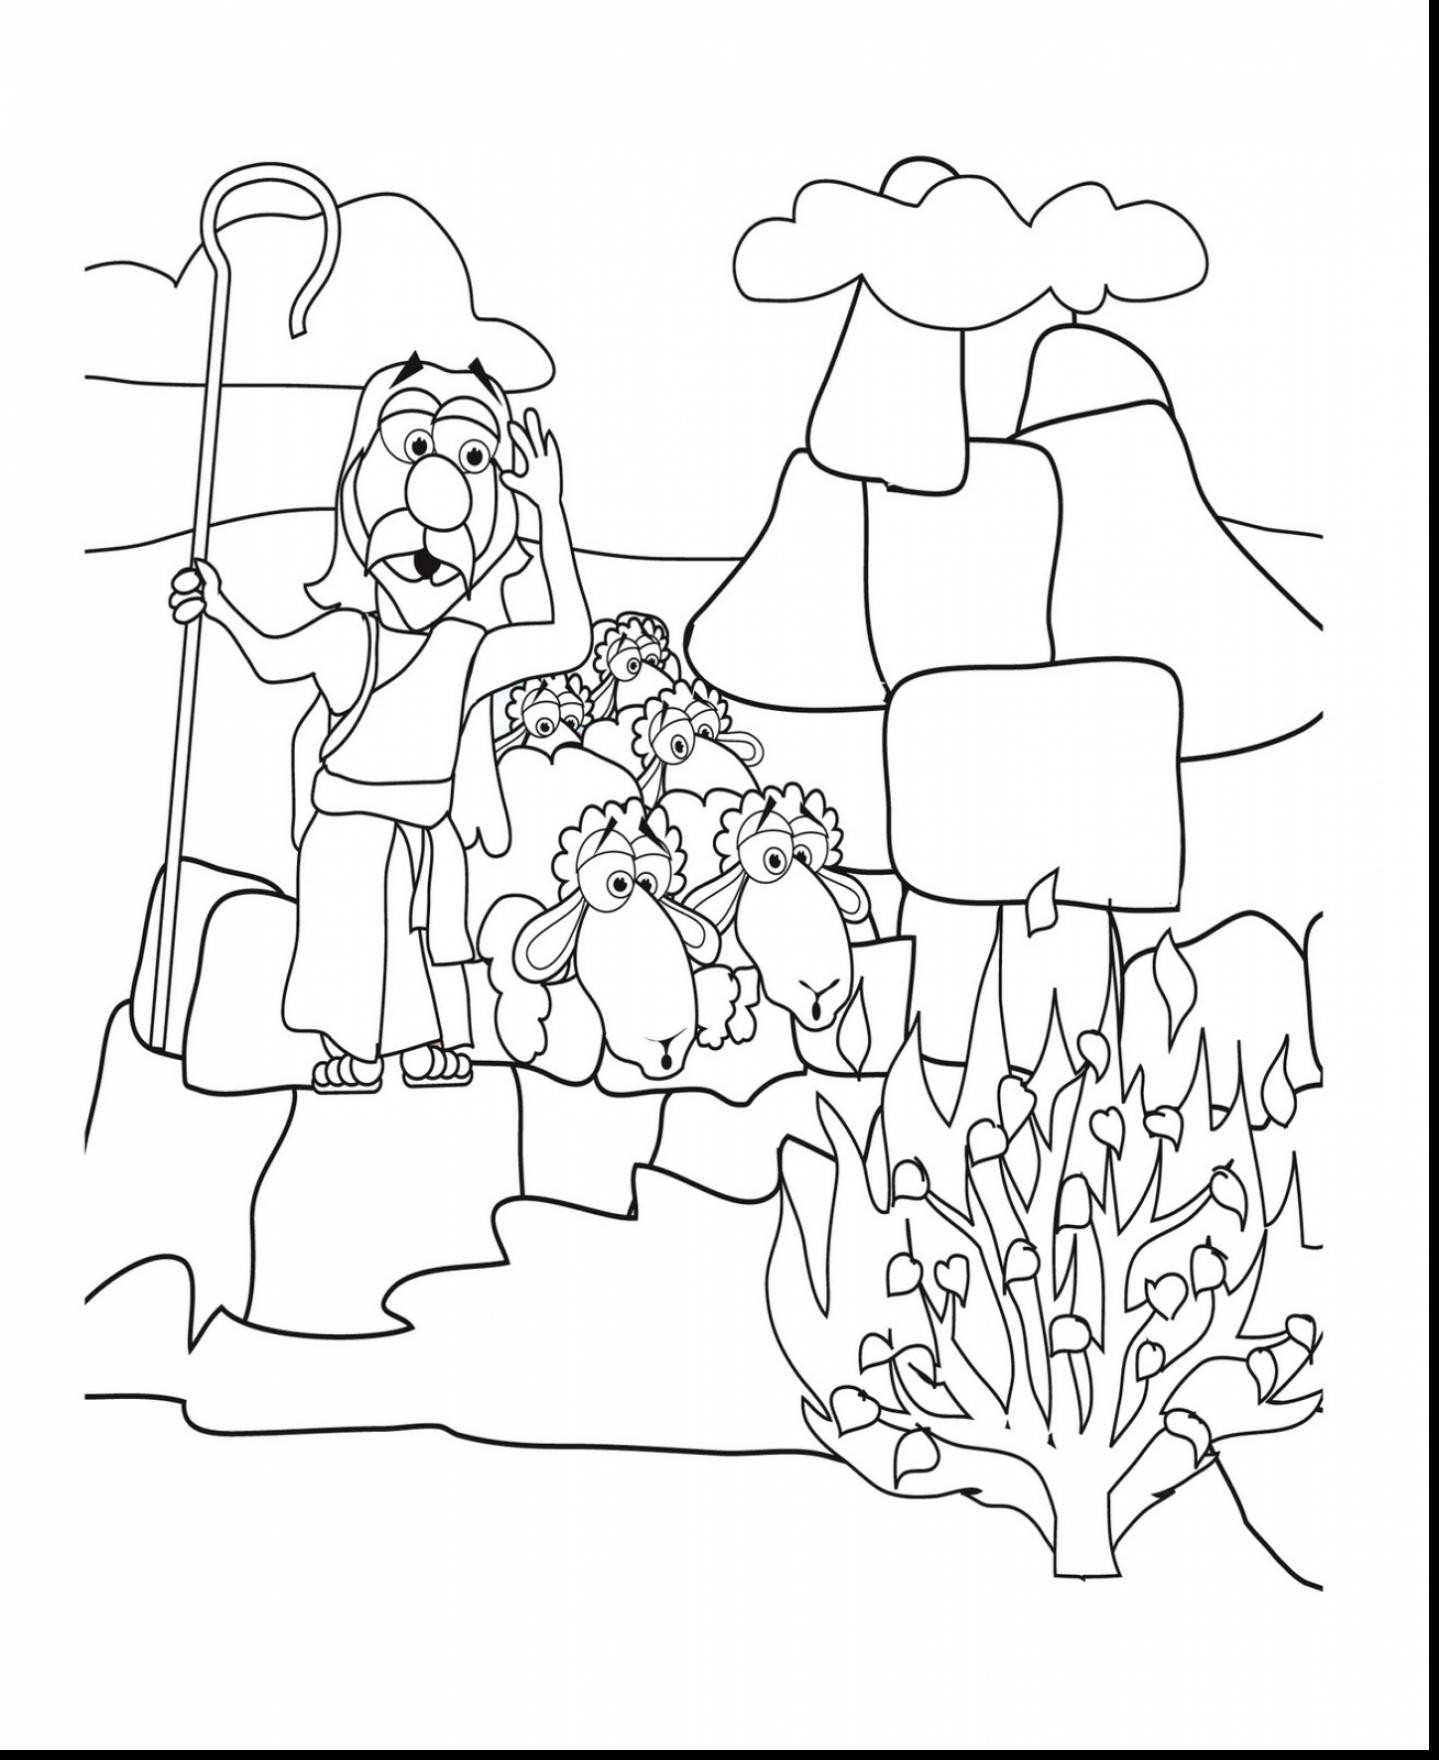 1439x1760 Unbelievable Moses Burning Bush Coloring Page With Egypt Also